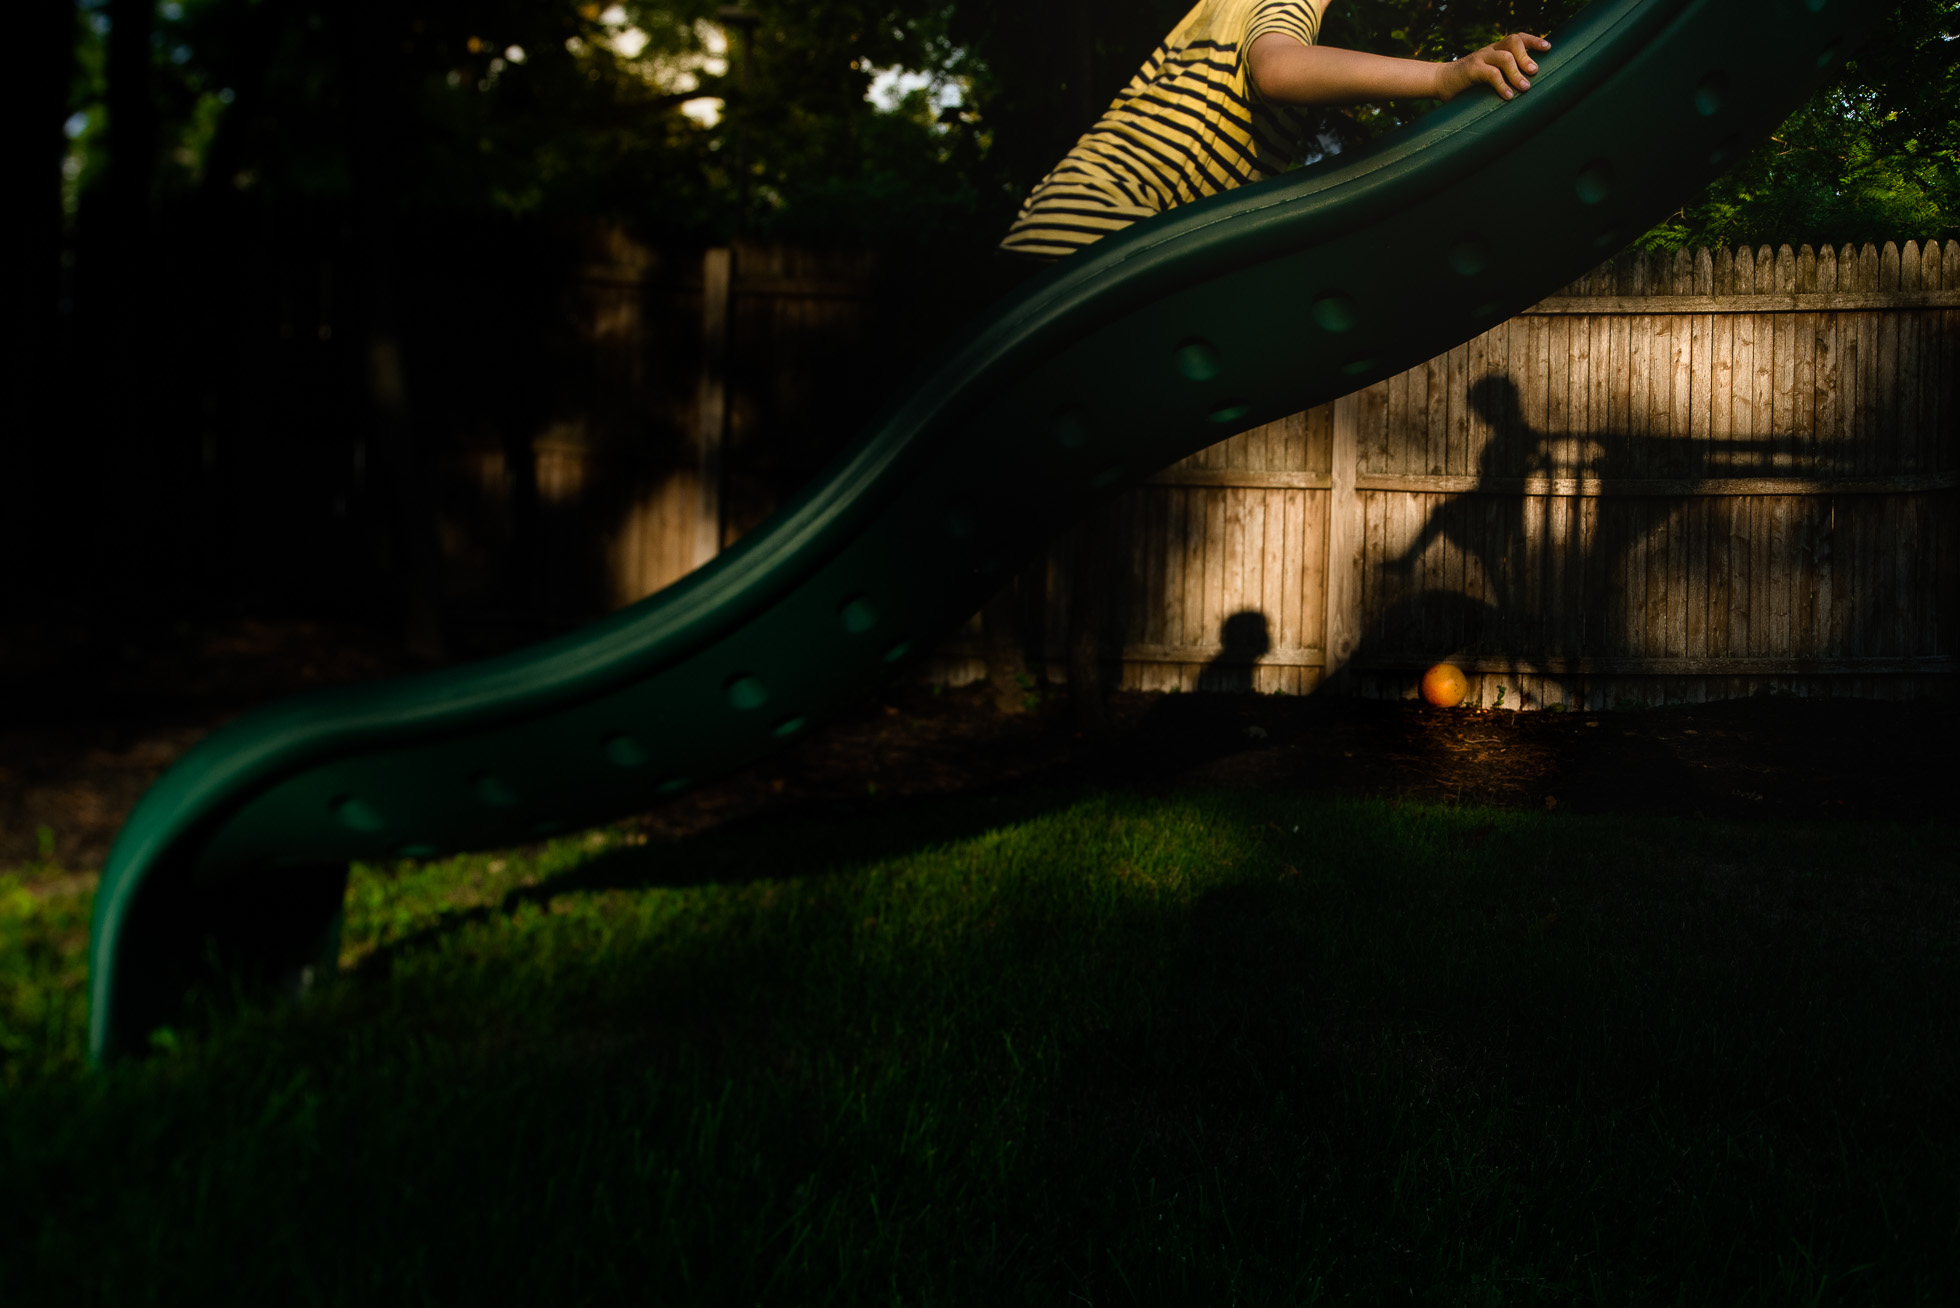 tilt-shift-photo-with-unconventional-composition-and-shadows-on-backyard-slide-by-sarah-wilkerson-0127